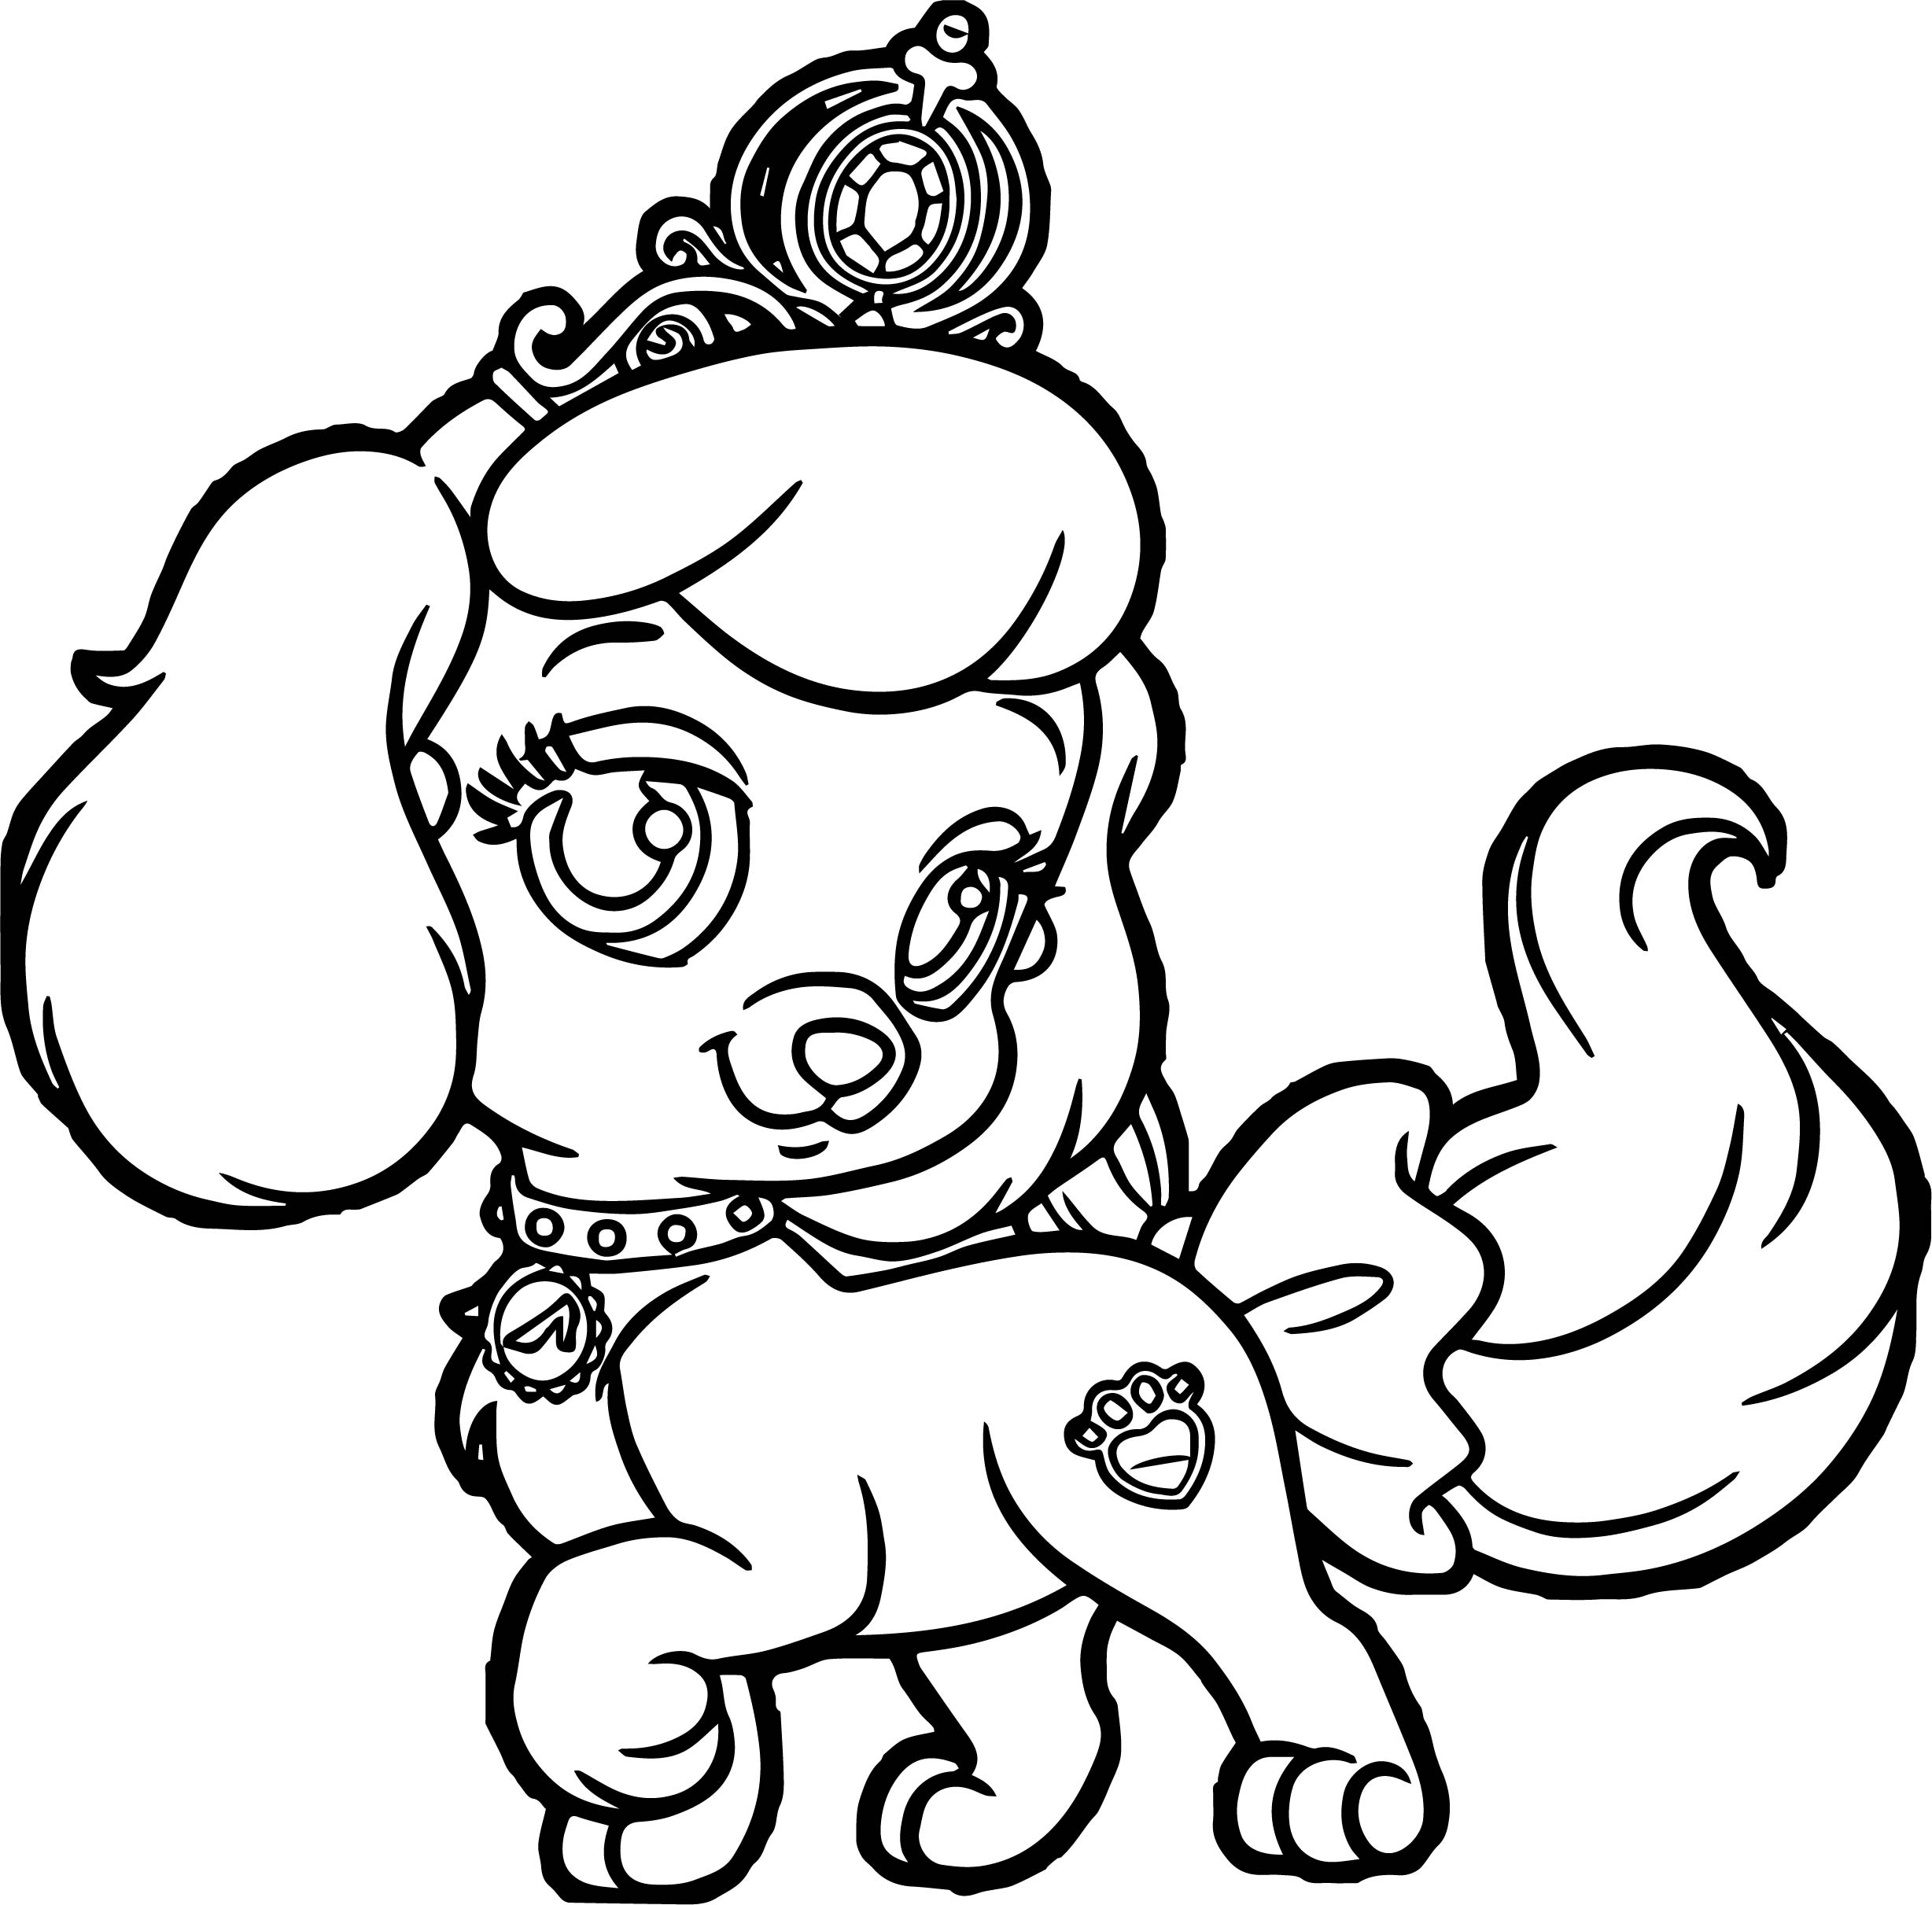 kawaii puppy coloring pages cute puppy coloring pages for kids free printable coloring puppy kawaii pages